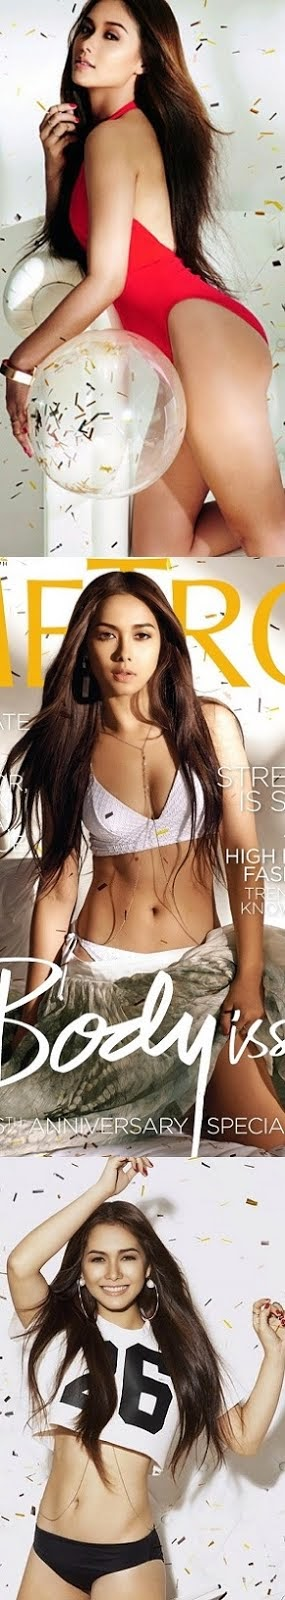 MAJA  SALVADOR  Photos 4!